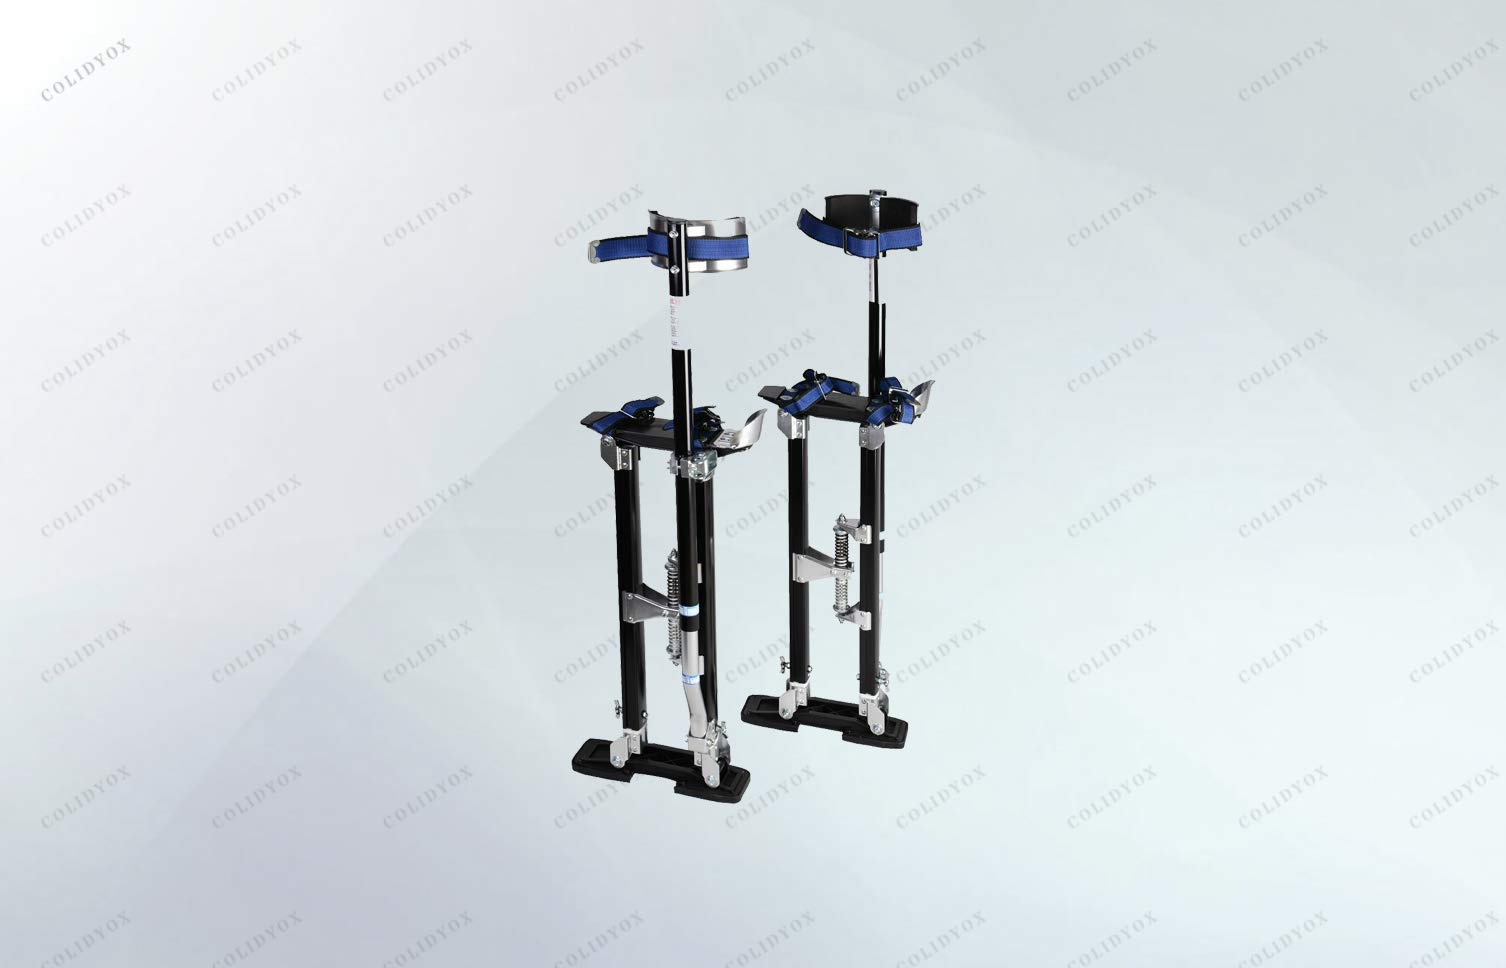 COLIDYOX_Brand new and ergonomic stilt,perfect tool to help you save a lot of time,industrial grade aluminum alloy,light-weight and durable,simple adjustment design